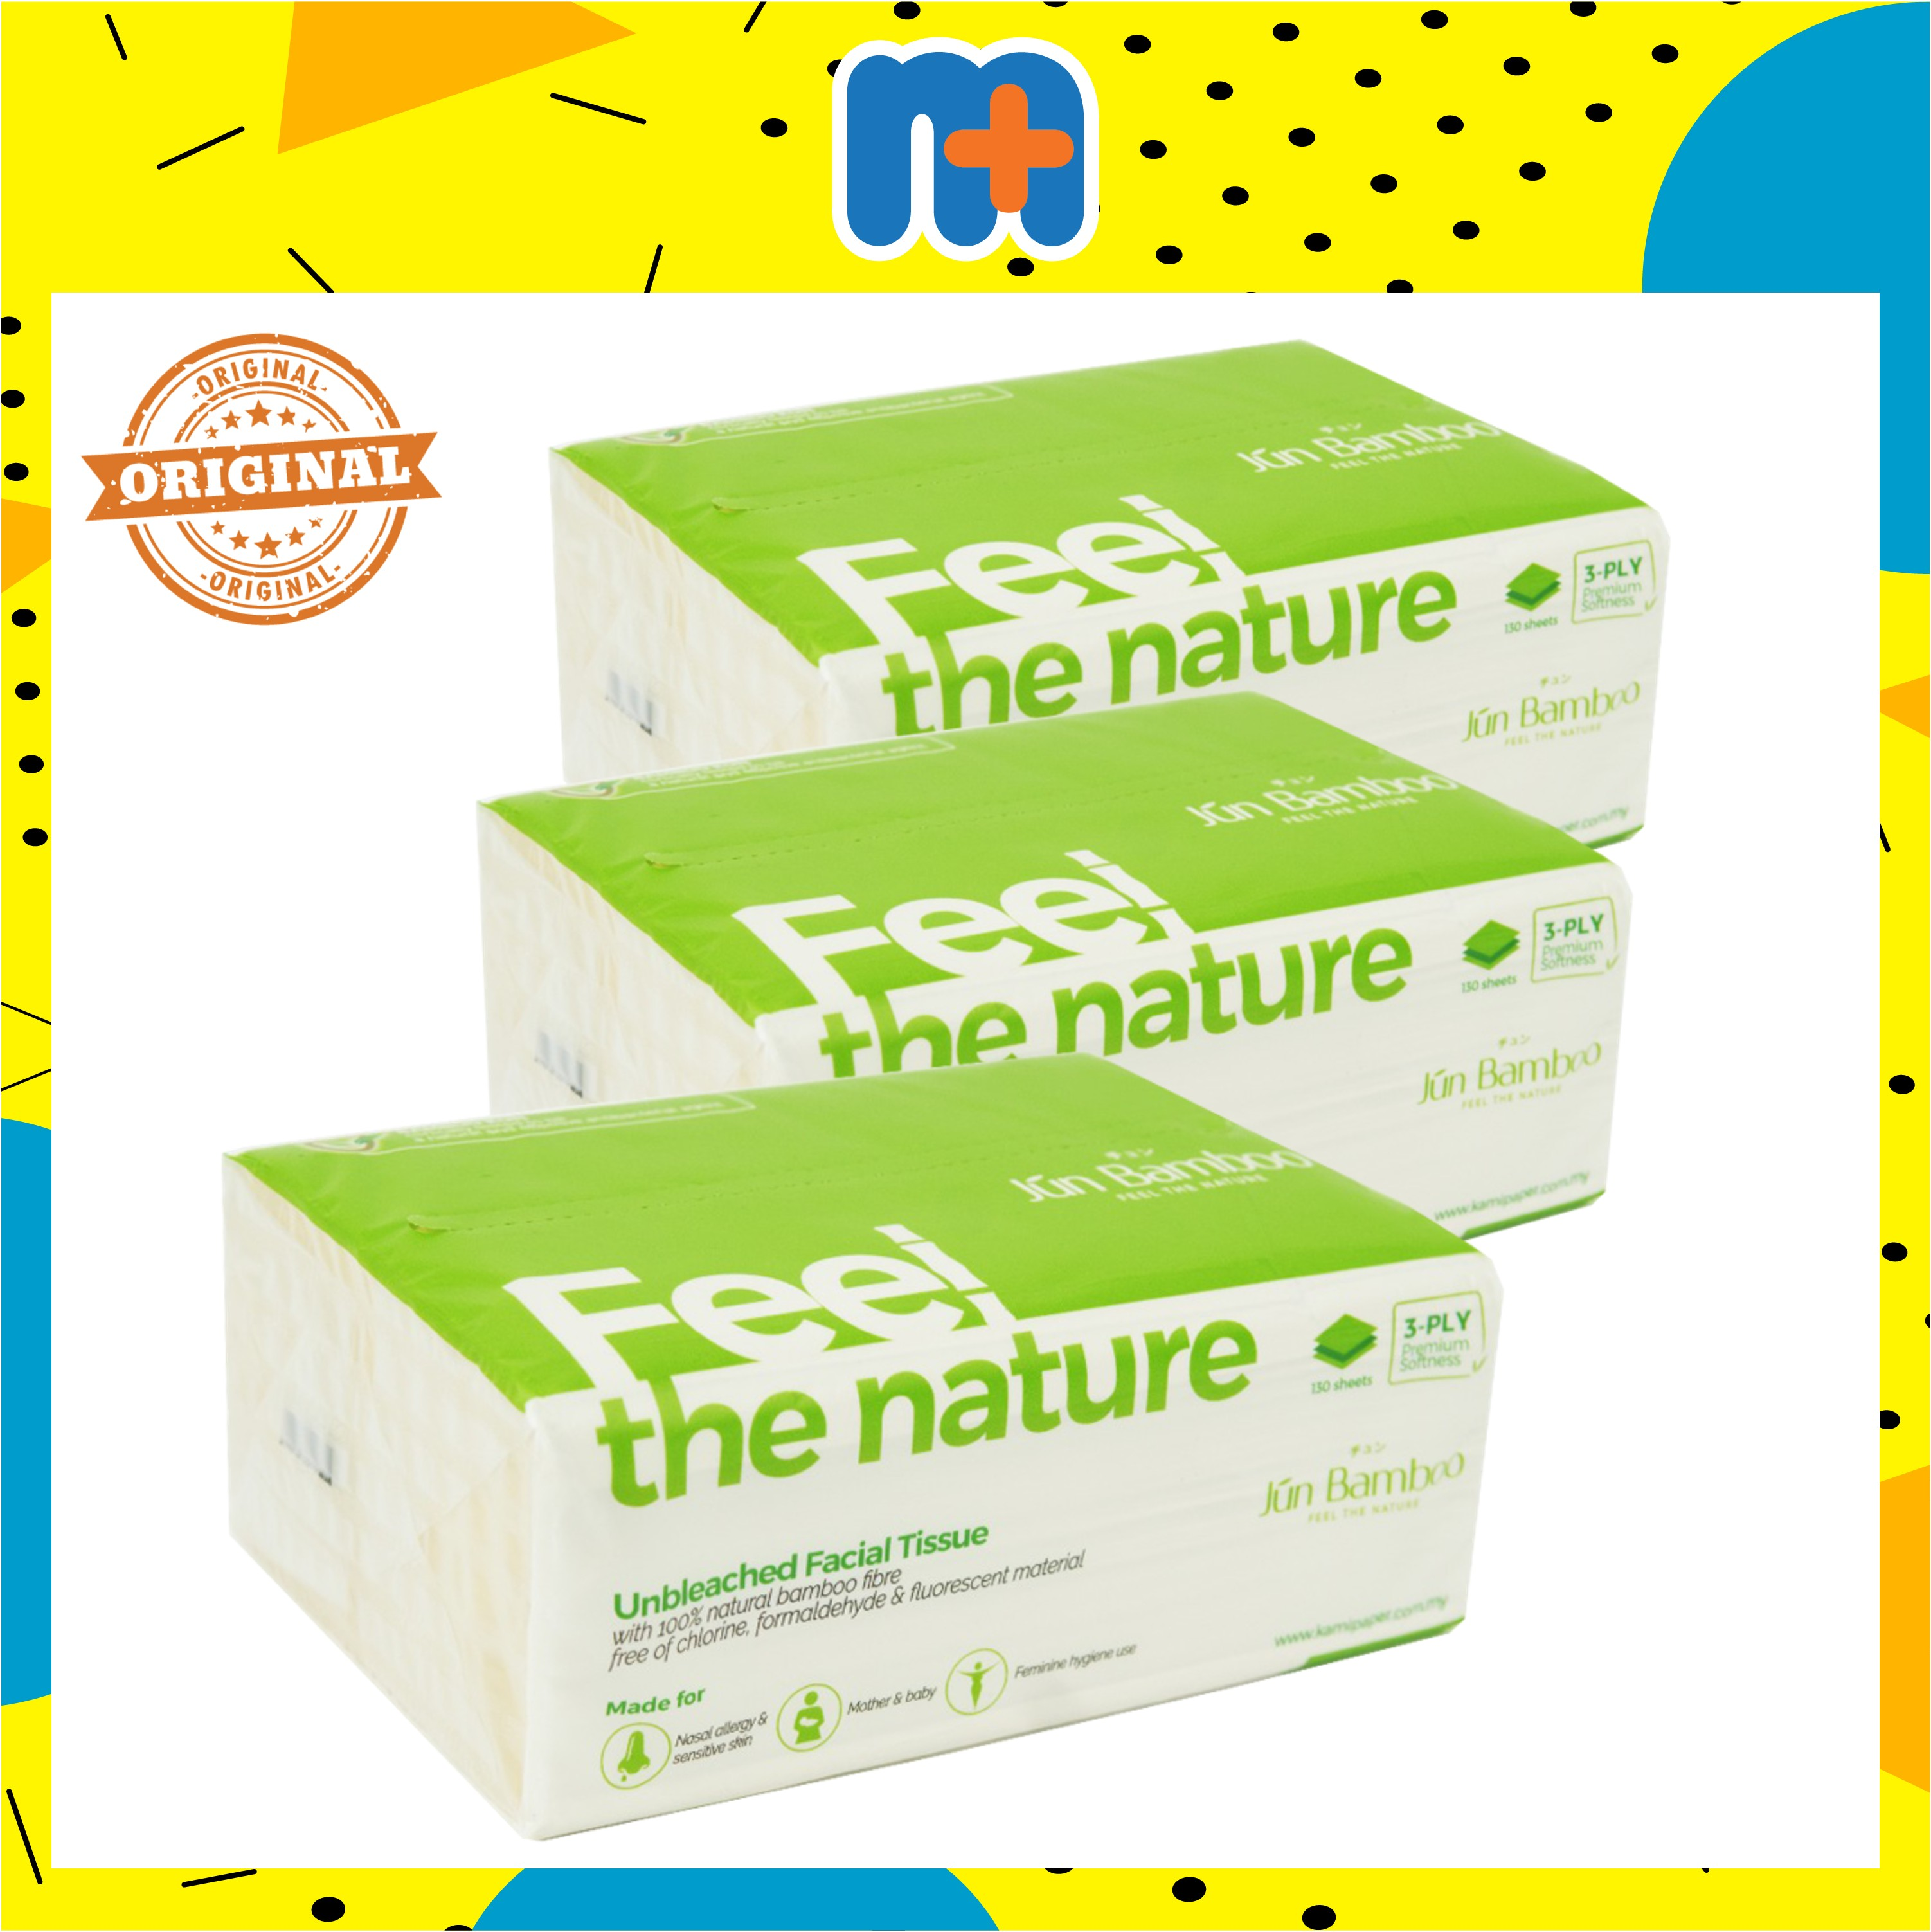 [MPLUS] Jun Bamboo Unbleached Facial Tissue Bundle (Single Pack * 3)